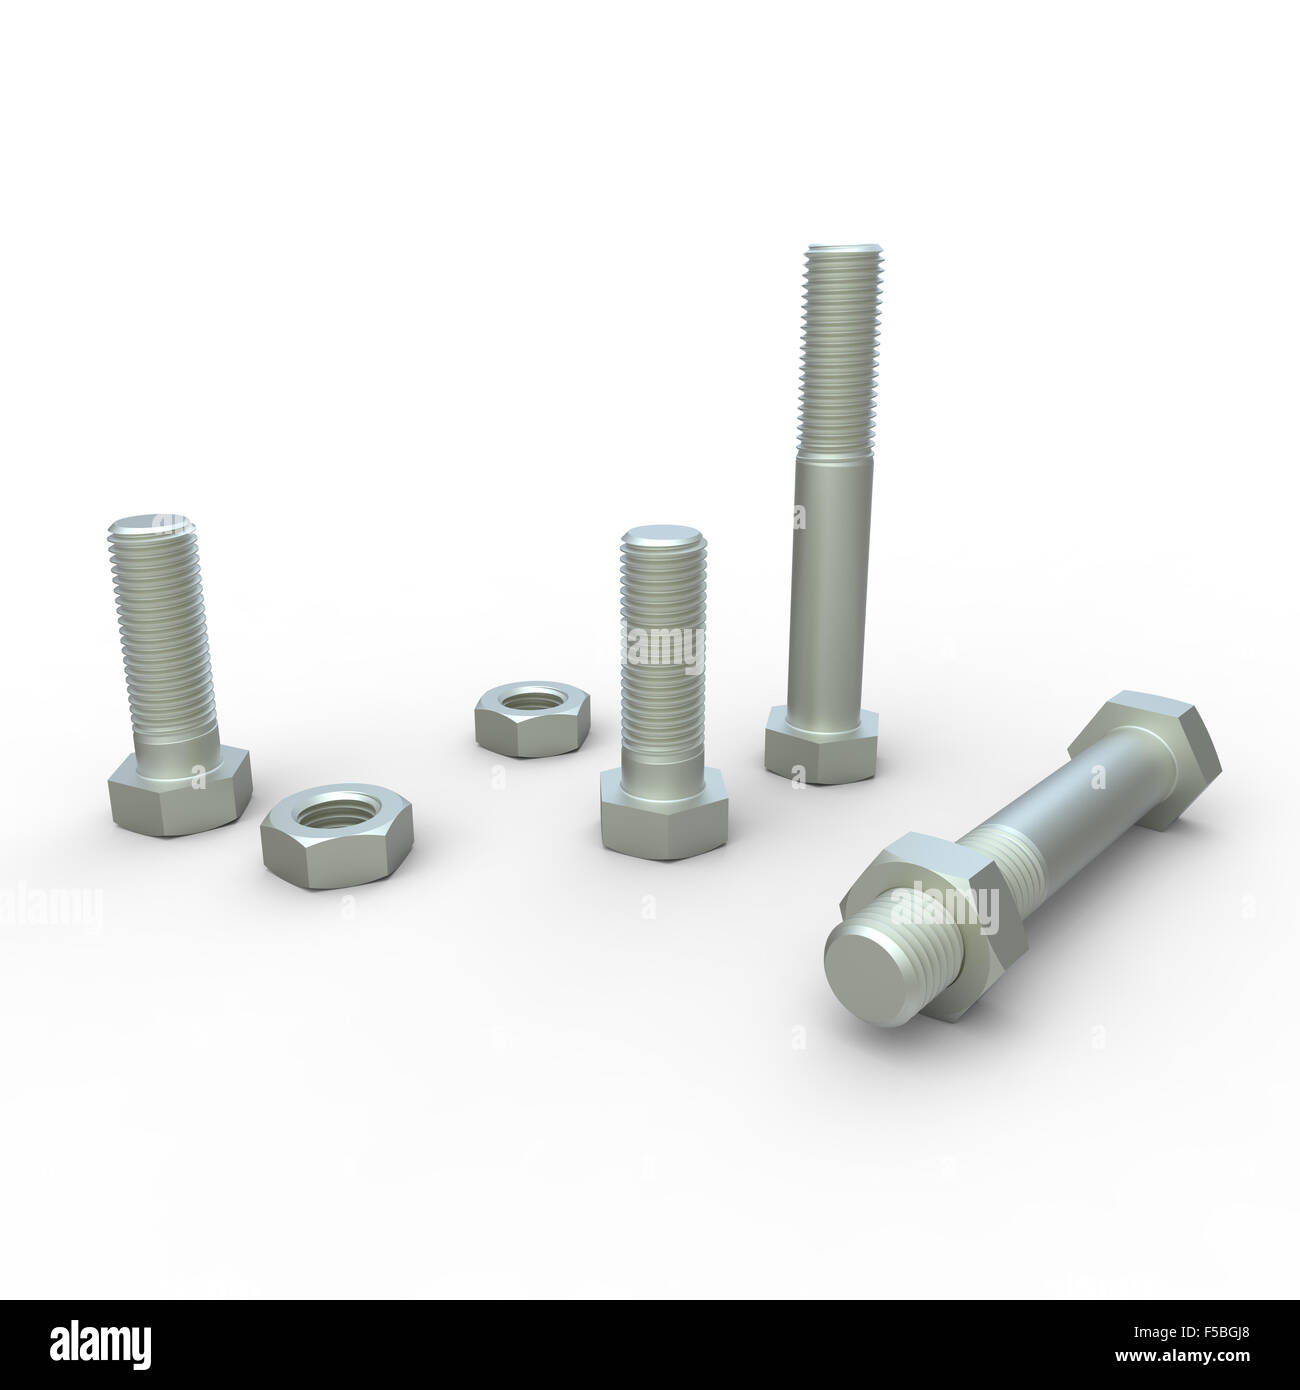 steel hexagon head threaded nuts bolts and screws on a white background - Stock Image